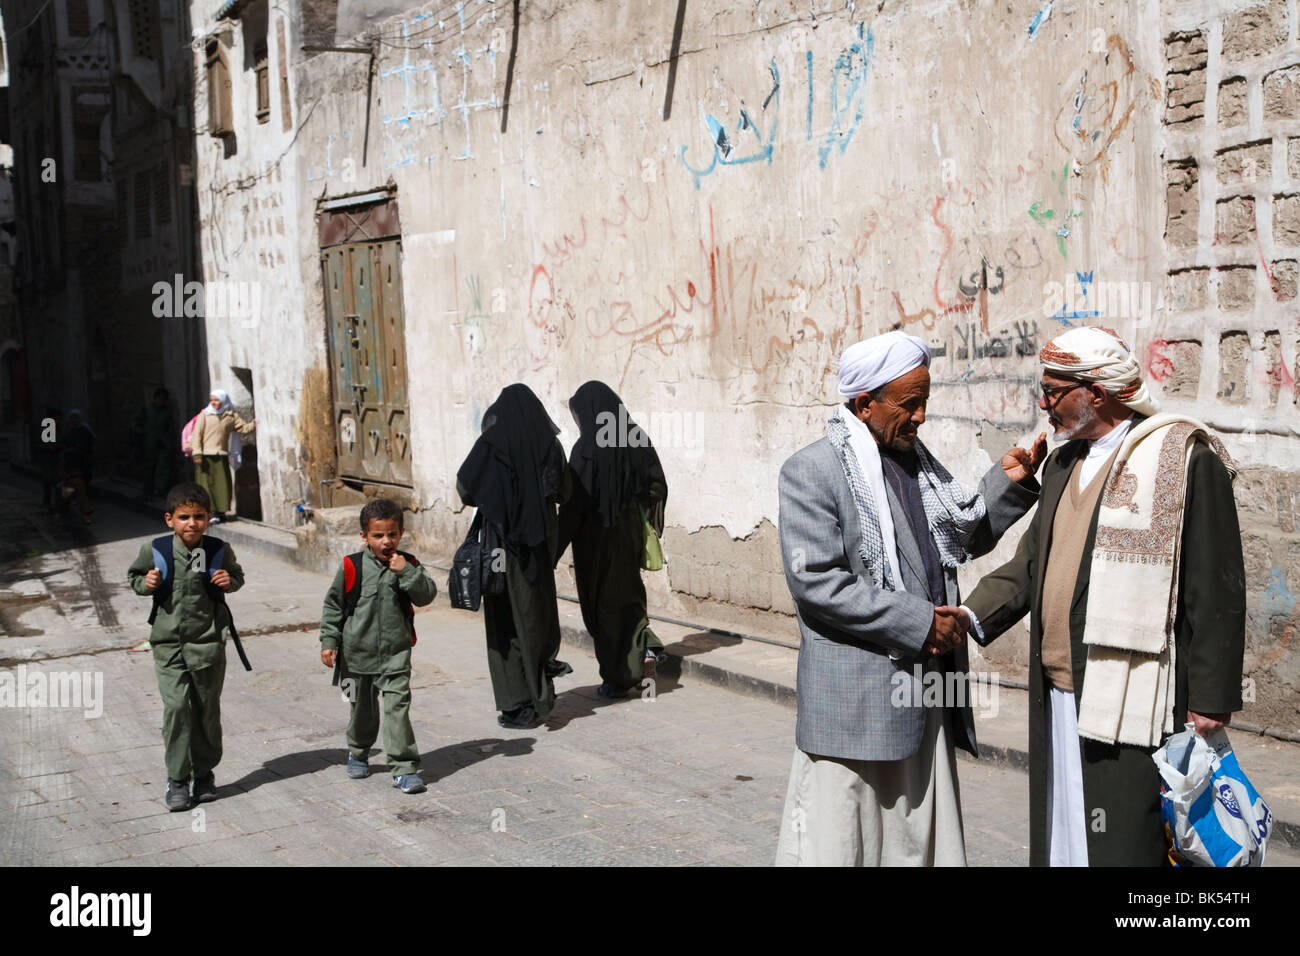 A street scene from the Old City of Sana'a, Yemen - Stock Image